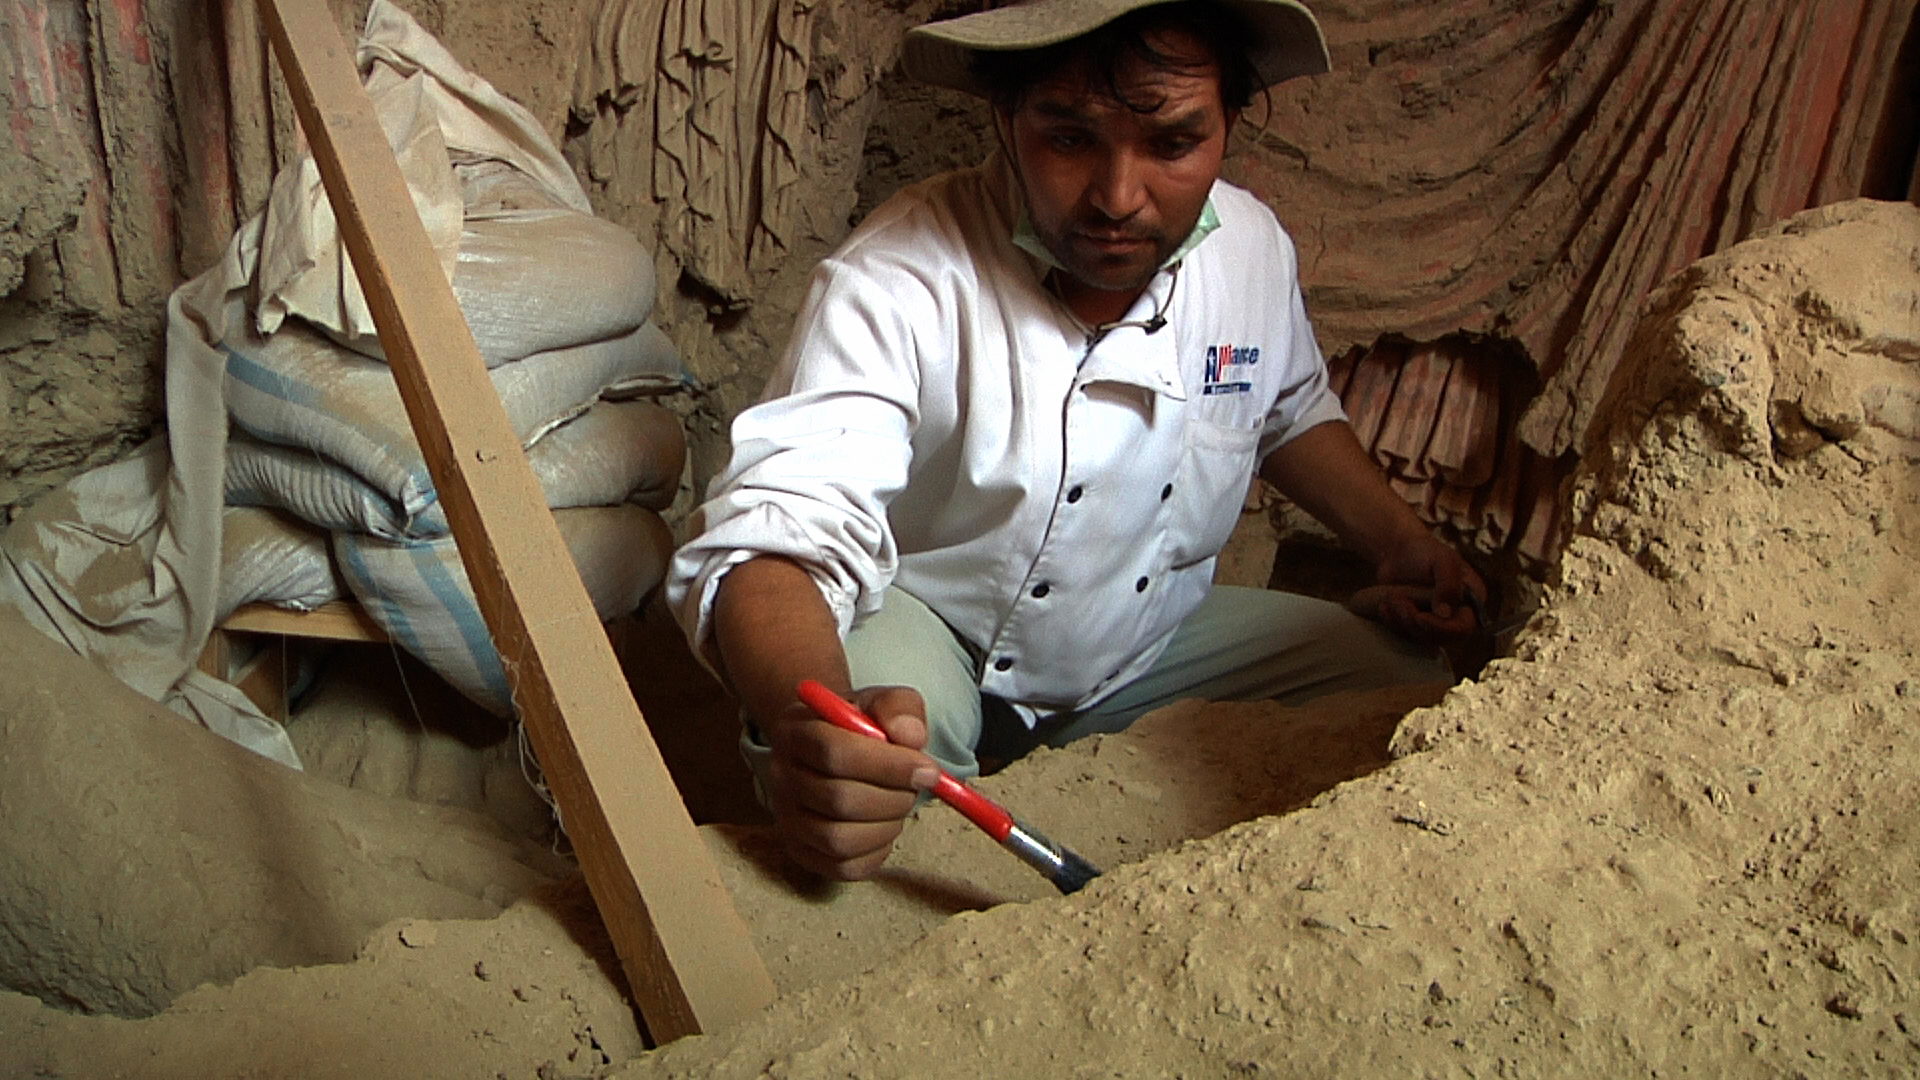 Lead Afghan Archaeologist and star of  Saving Mes Aynak  Qadir Temori.